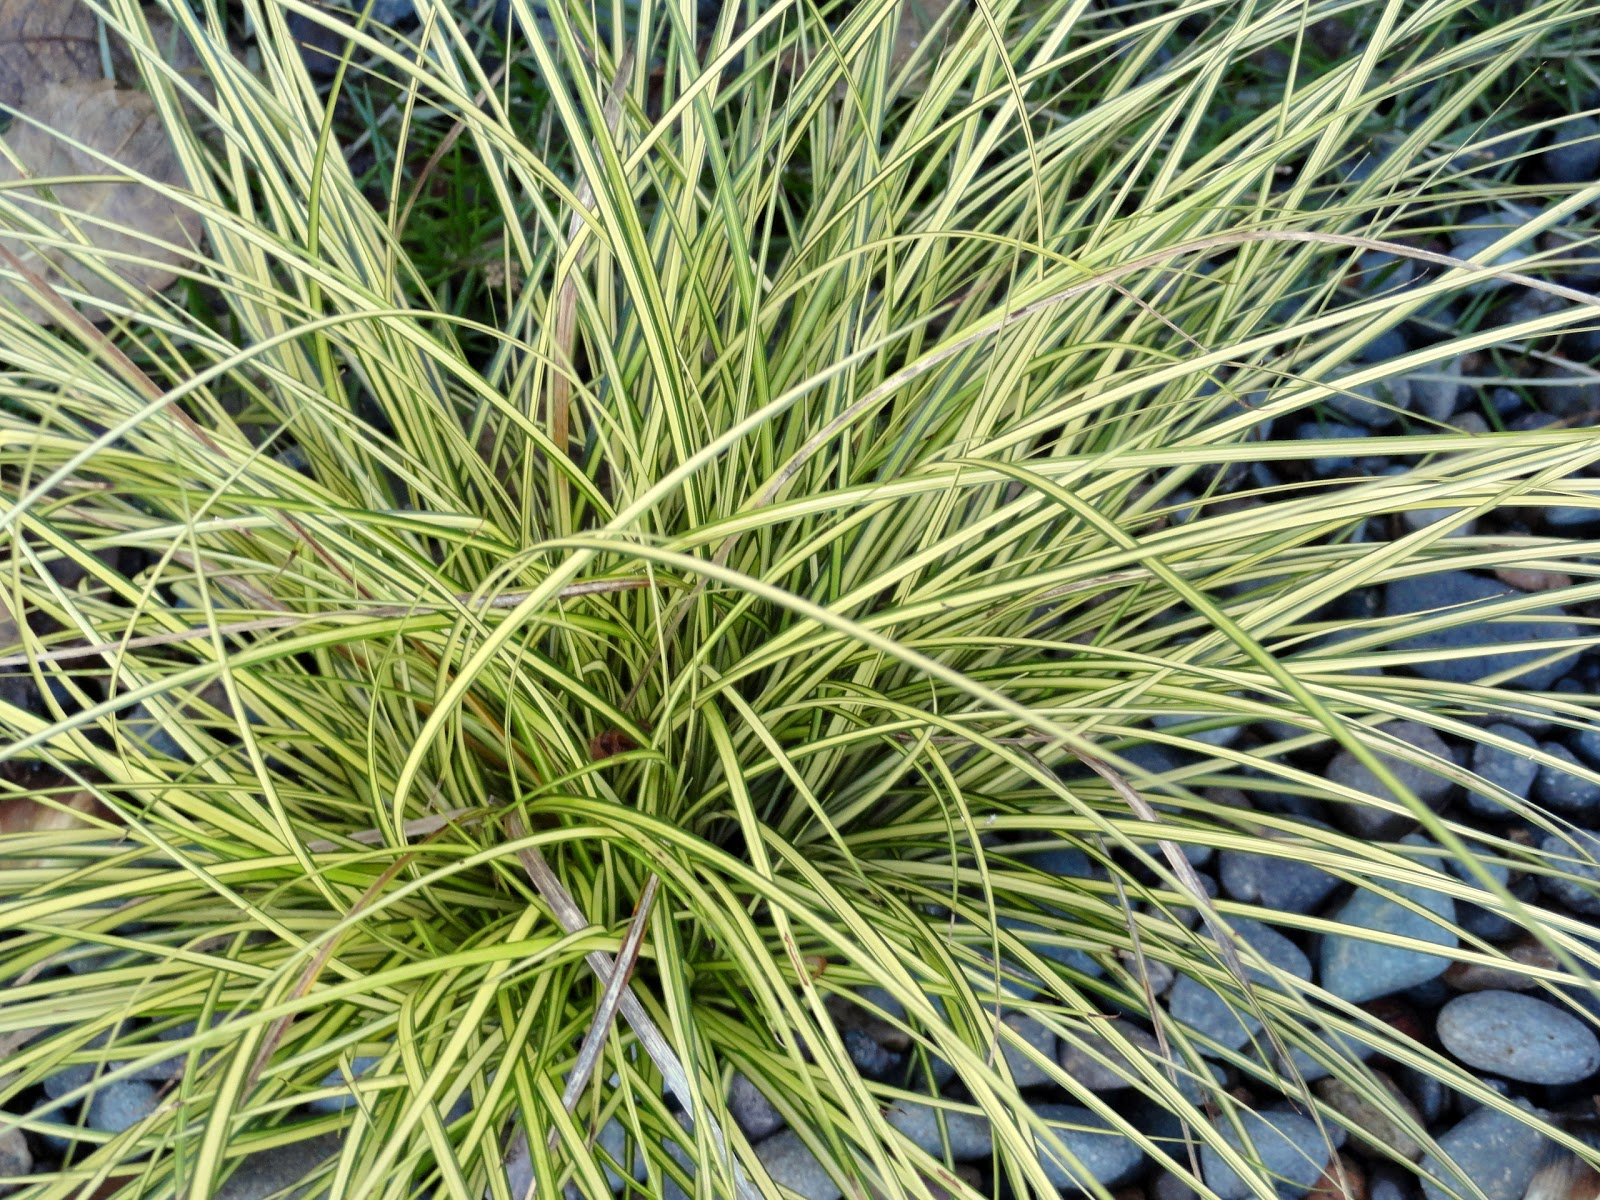 Danger garden carex brunnea jenneke my favorite plant in the garden this week - Cadre x ...